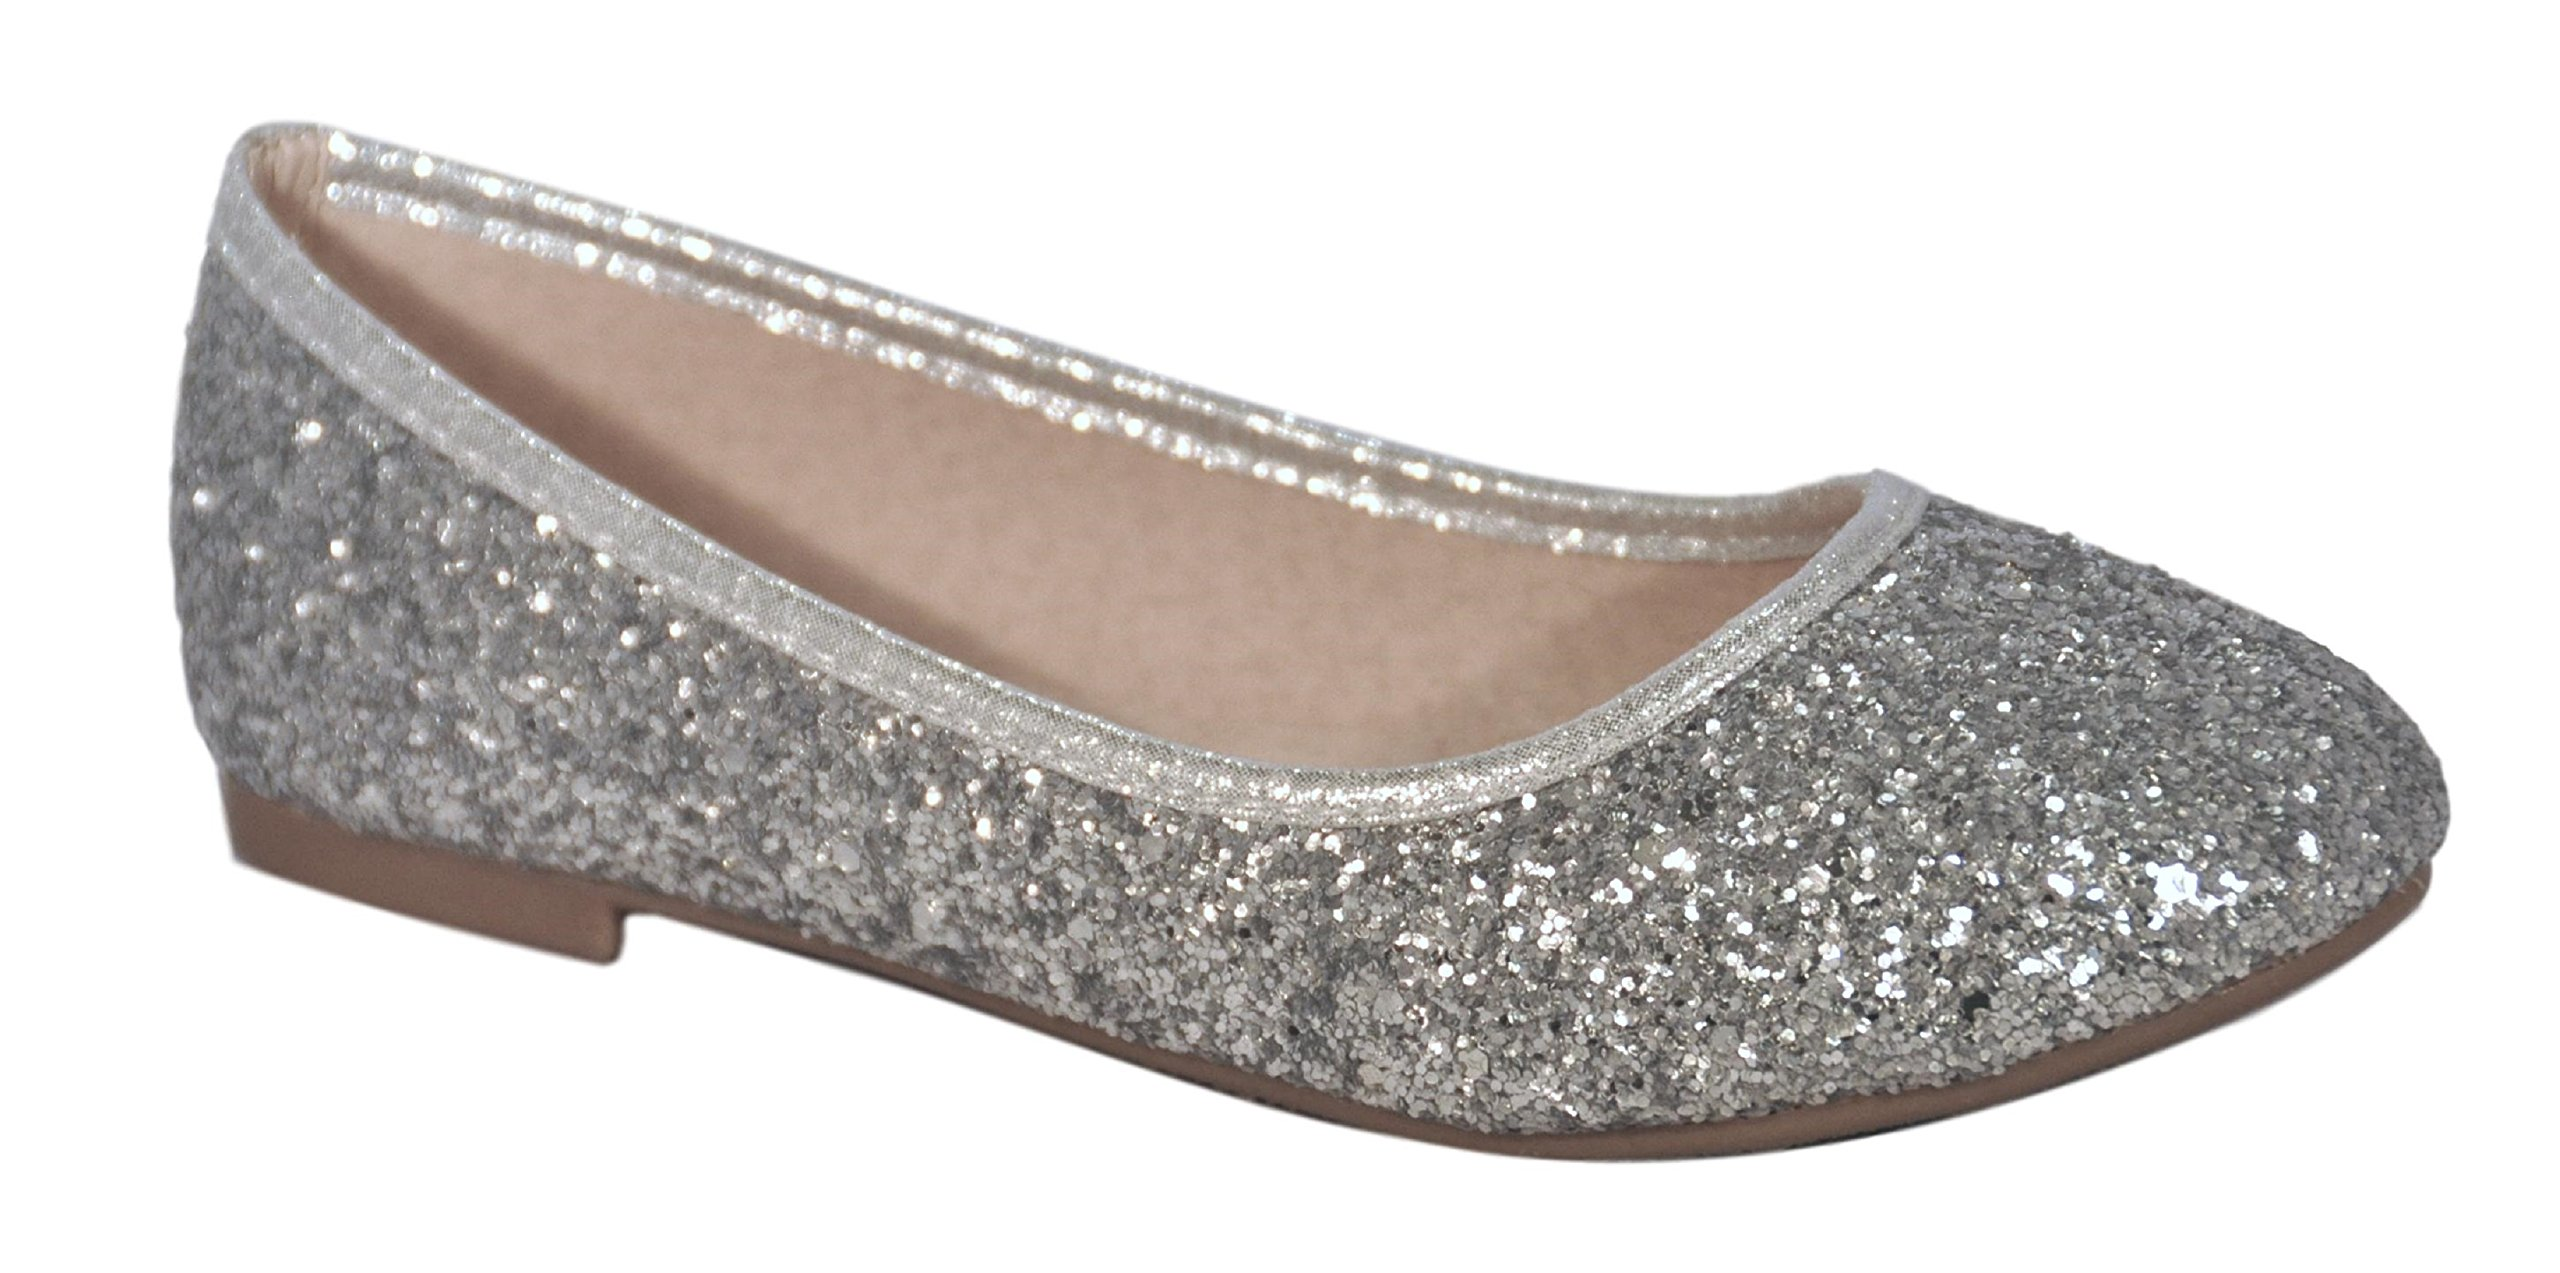 Clearance Sale Silver Metallic Elegant Sparkle Wedding Dress Shoe for Girl Wide Comfortable Prime Glitter Cute Zapatos Bonitos para Ninas Cheap Youth Kid Girl Flat Slip On (Size 9, Silver)